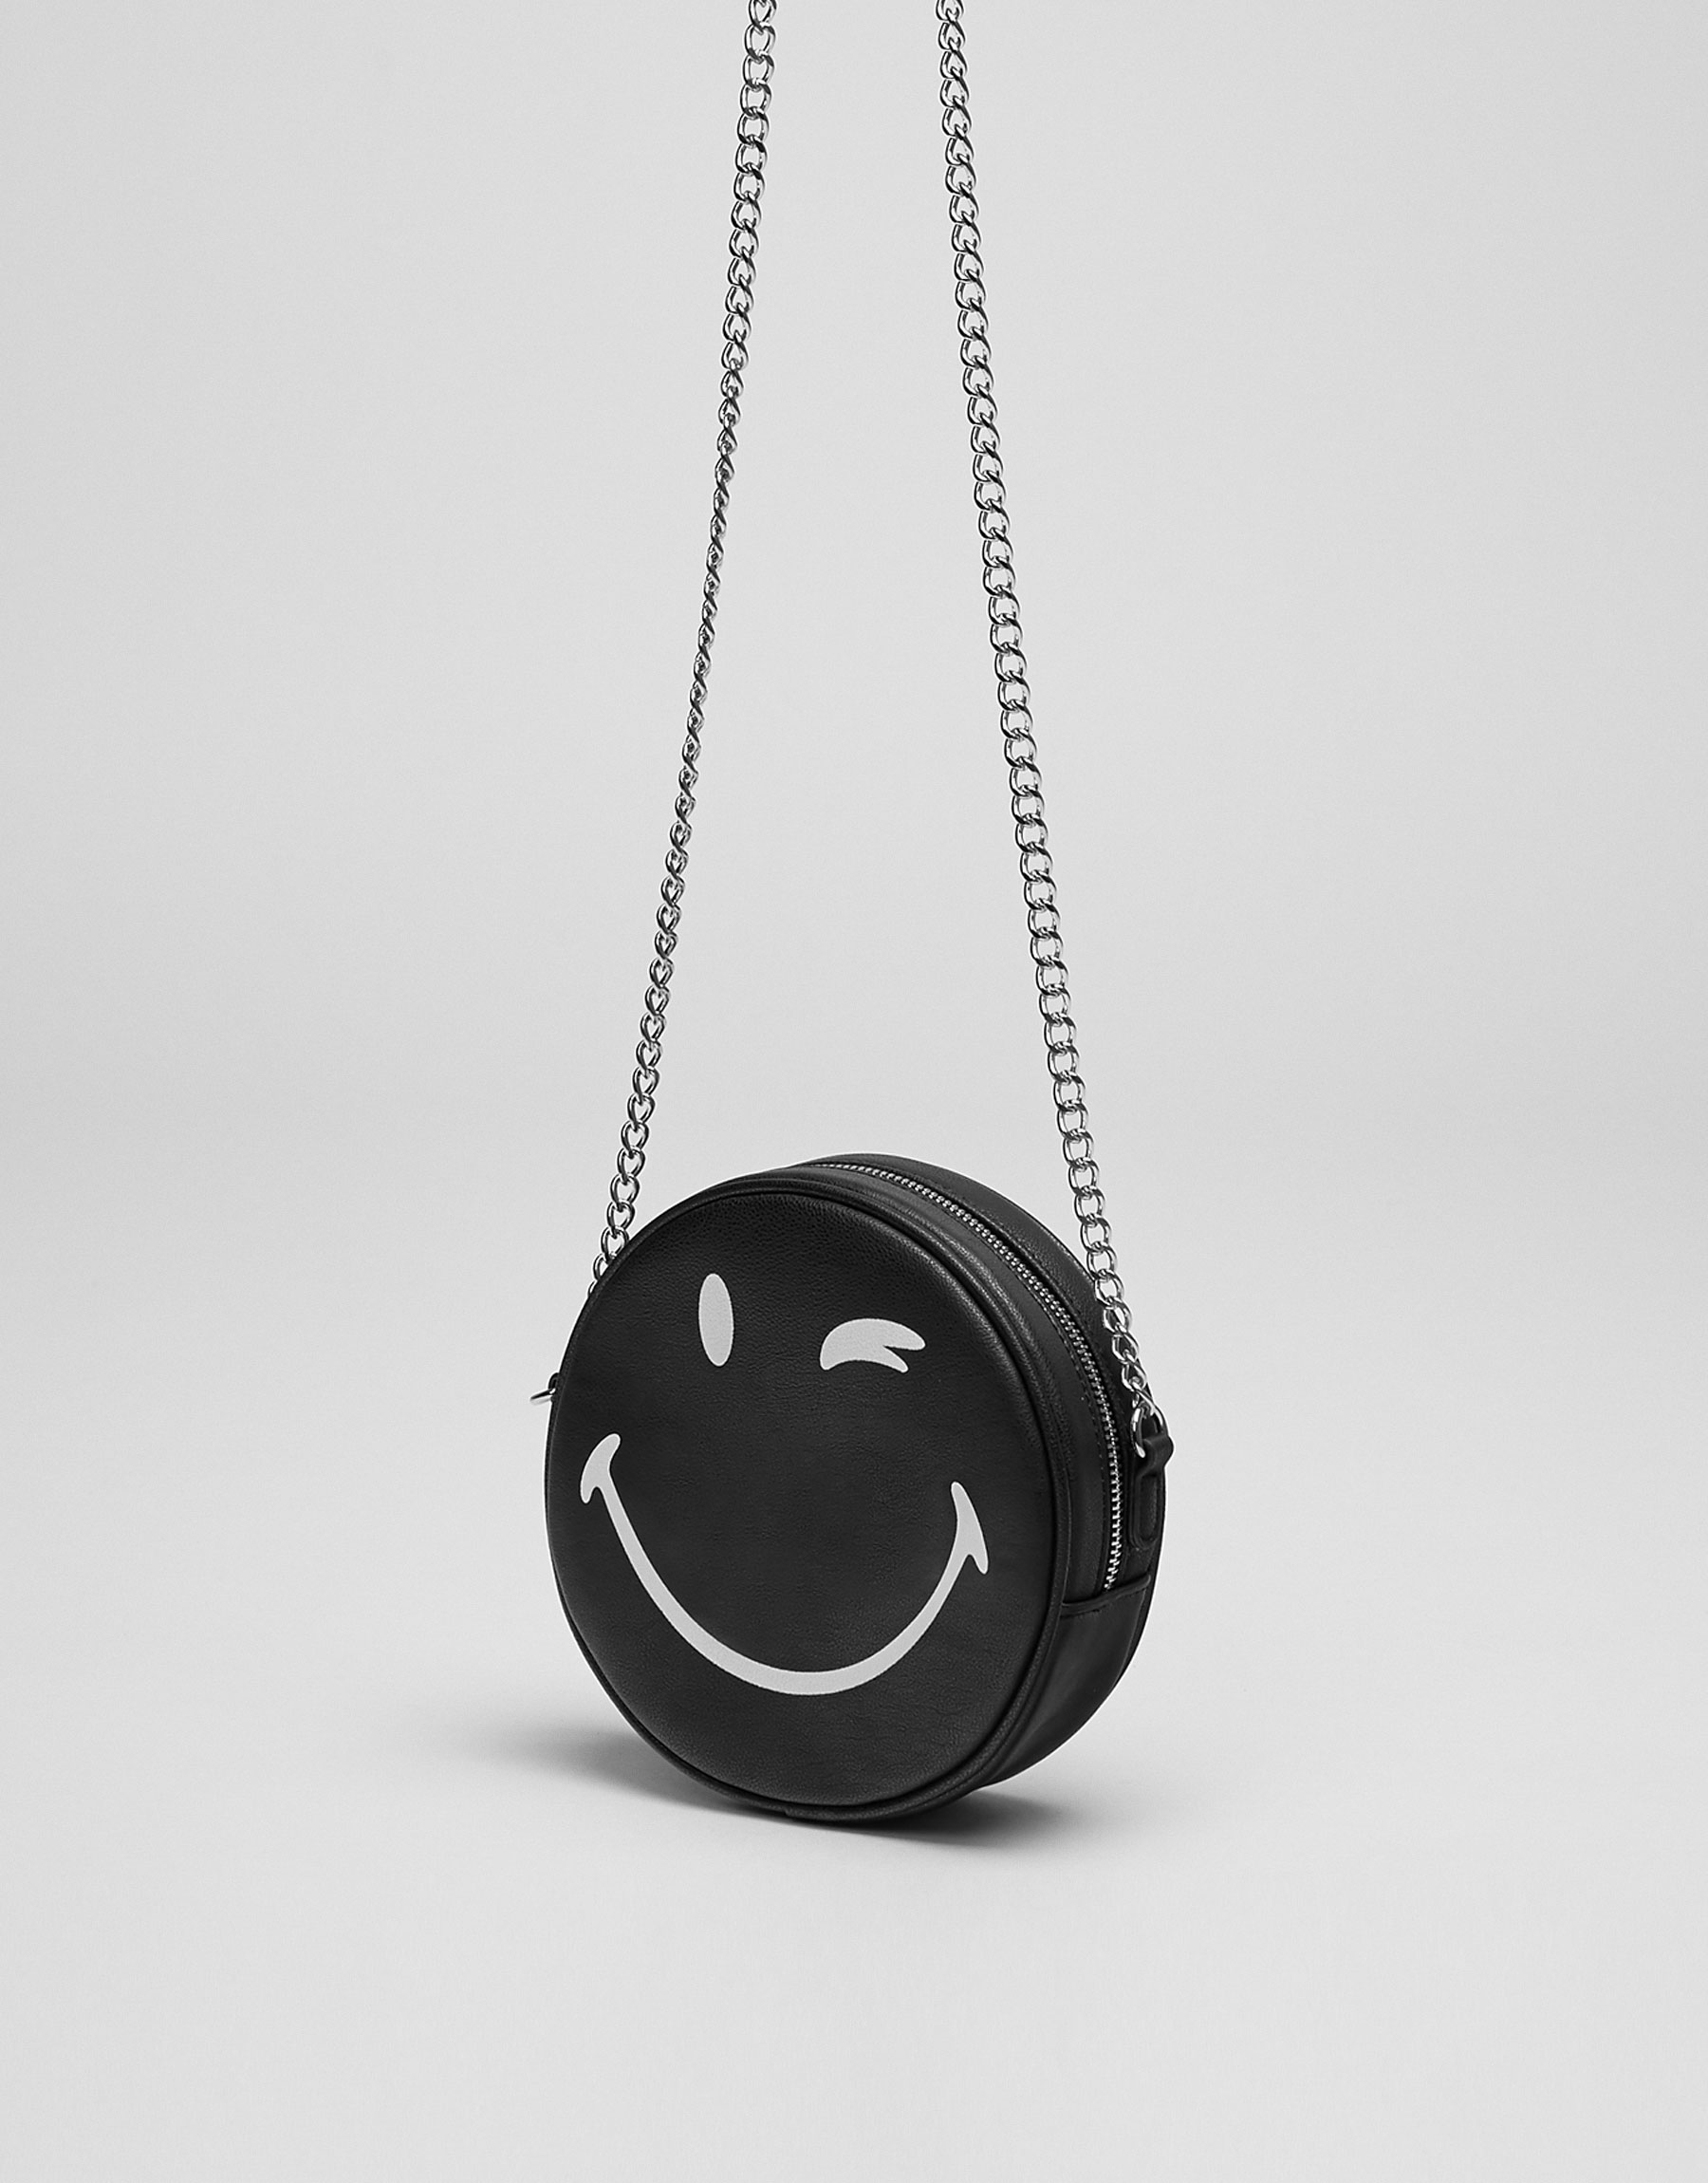 Mini black smiley face crossbody bag